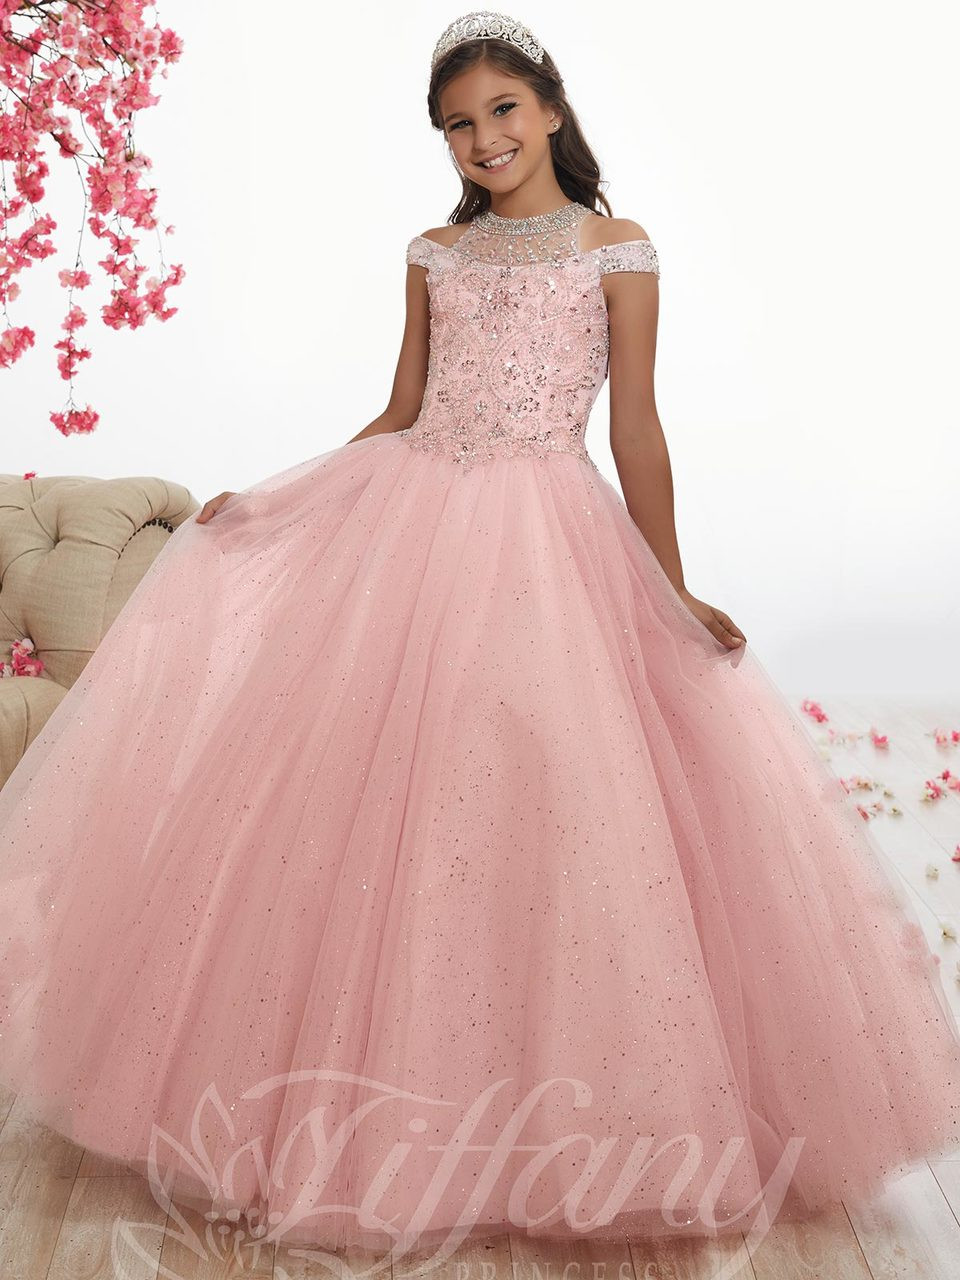 0ea39c07207 Intricate Beaded Back Sparkle Tulle Tiffany Princess Dress 13525 ...